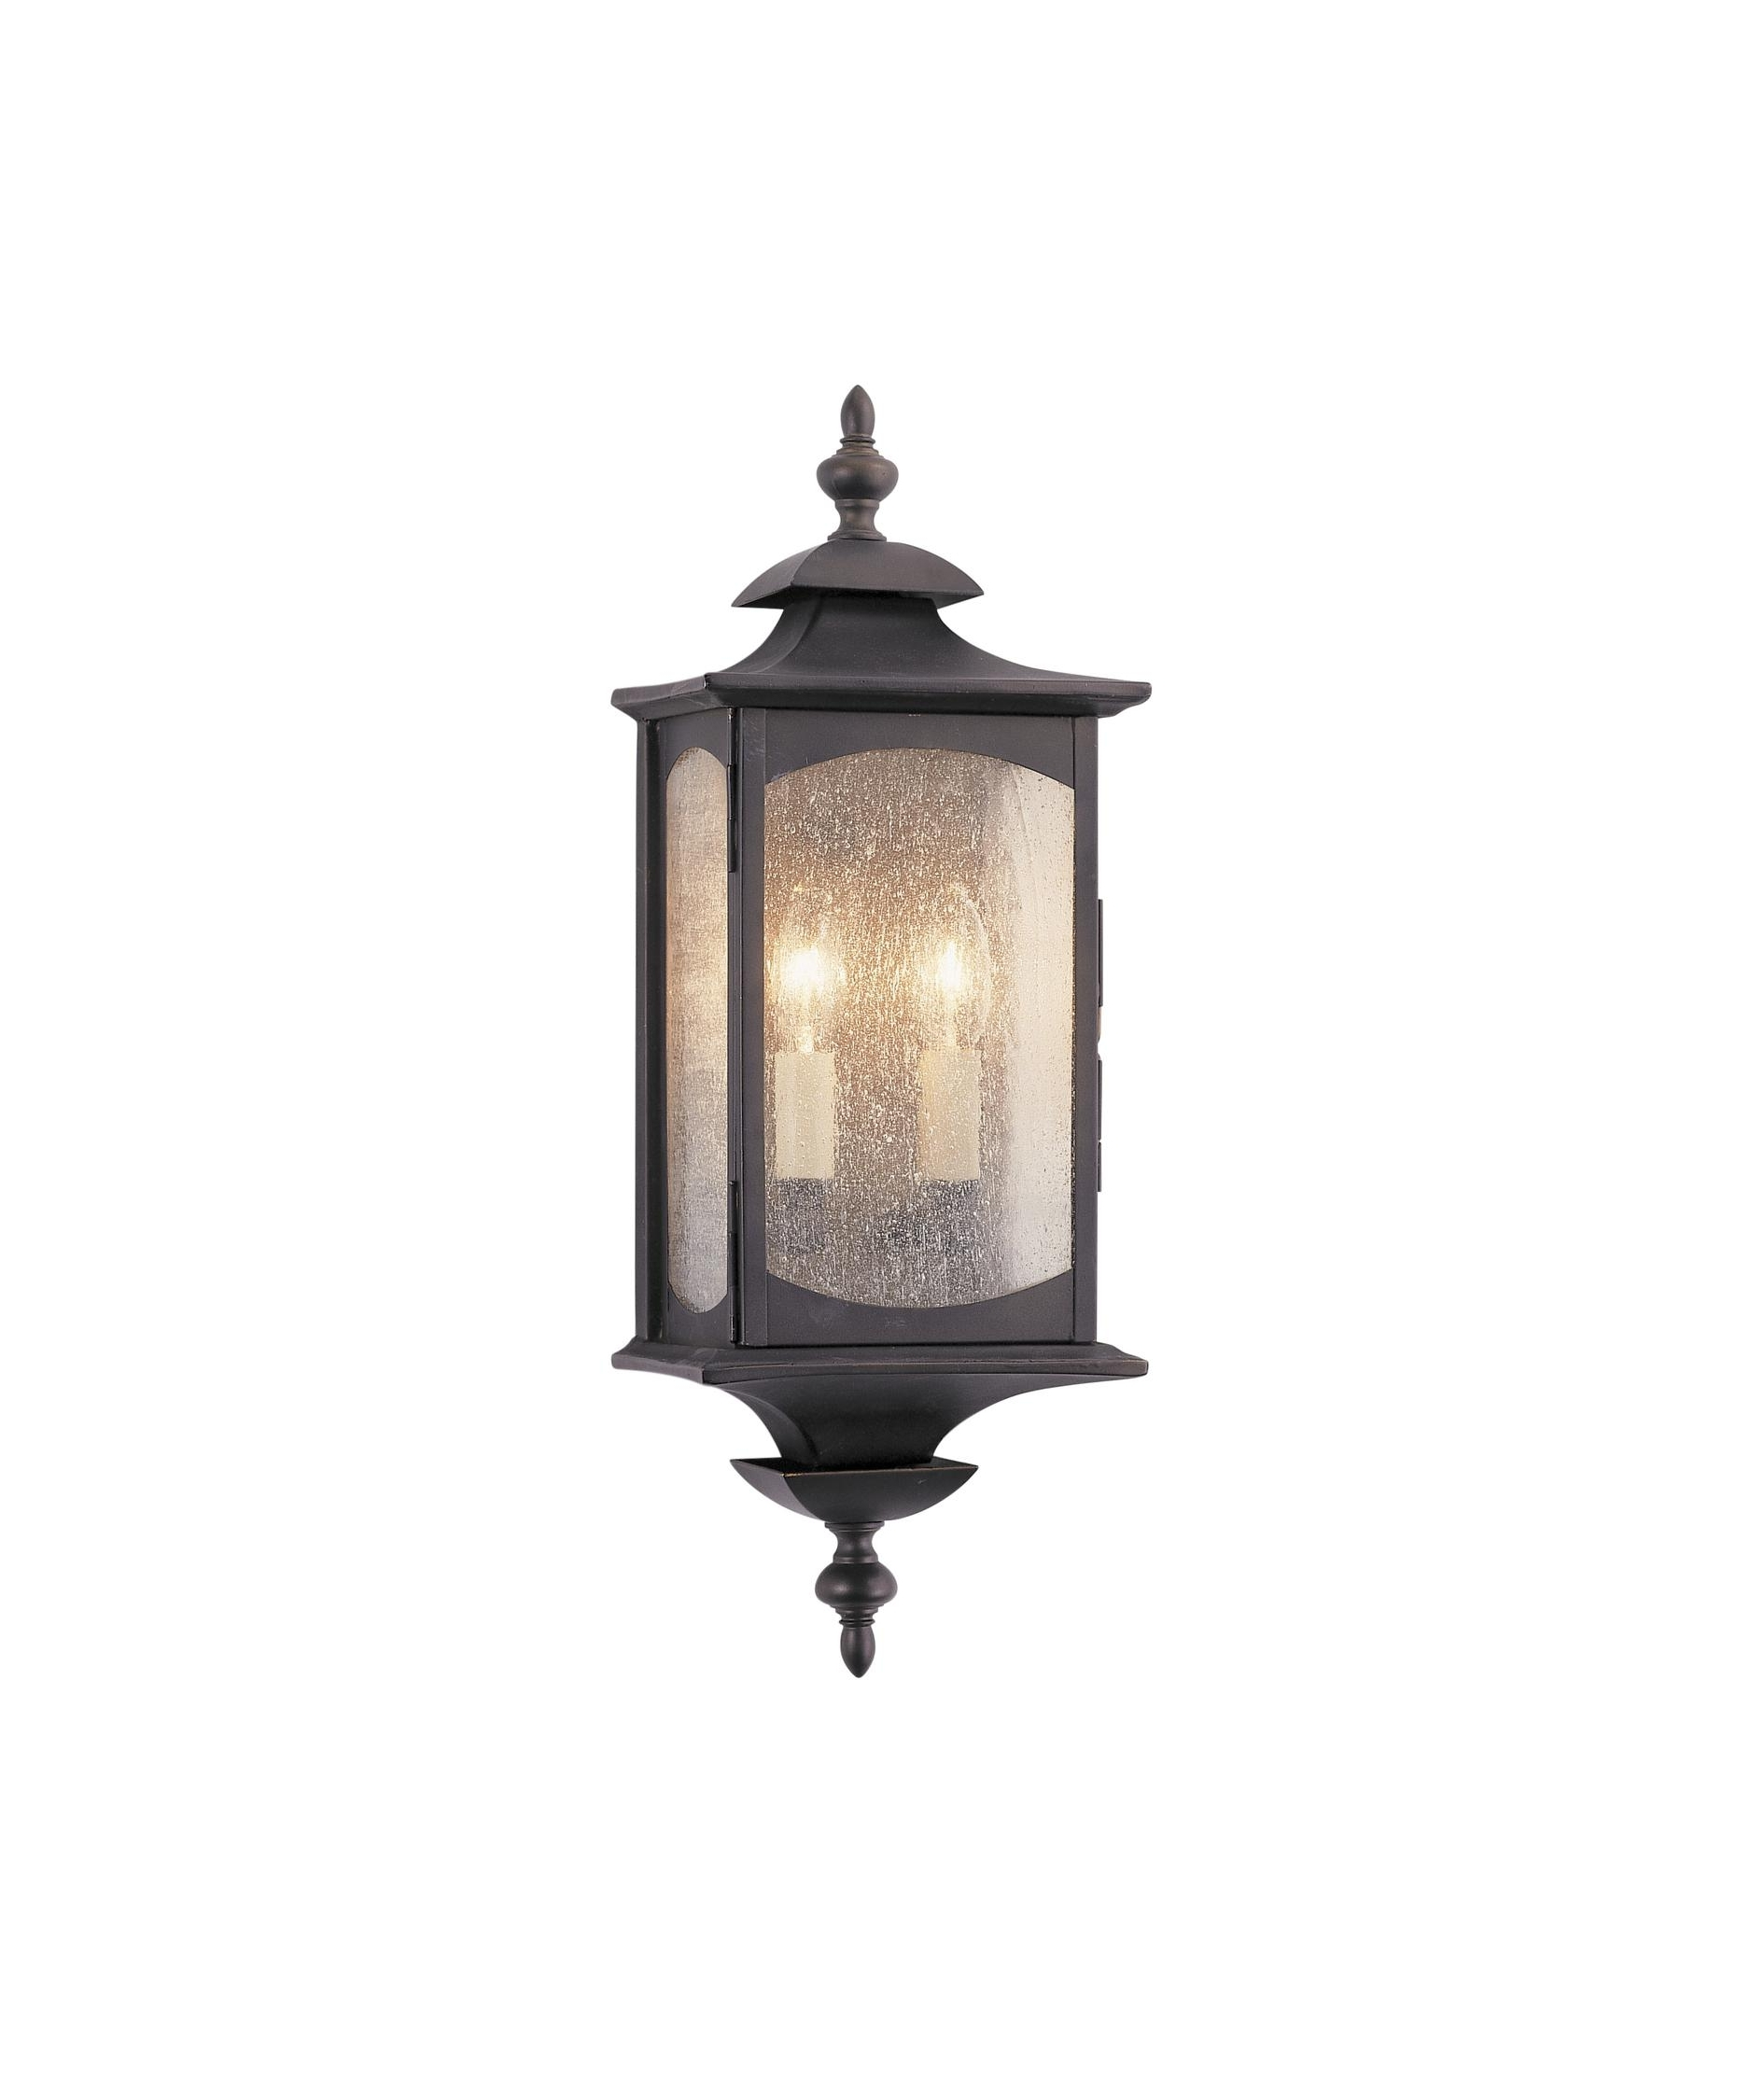 Preferred Outdoor Wall Lighting With Seeded Glass Within Murray Feiss Ol2601 Market Square 7 Inch Wide 2 Light Outdoor Wall (View 15 of 20)